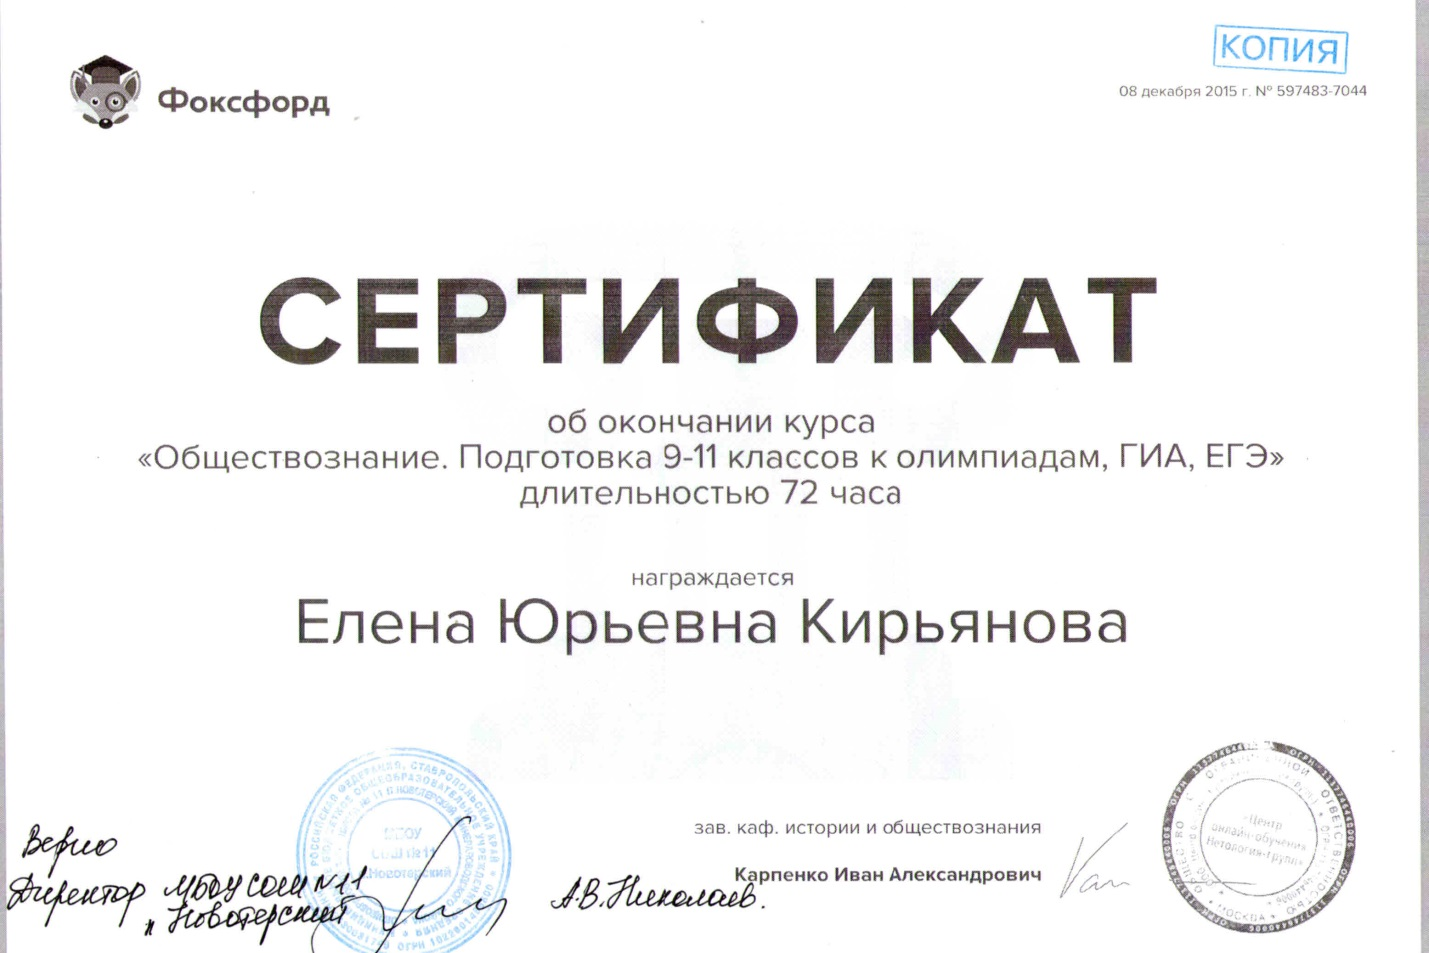 C:\Users\Сергей\Desktop\Document_7.jpg